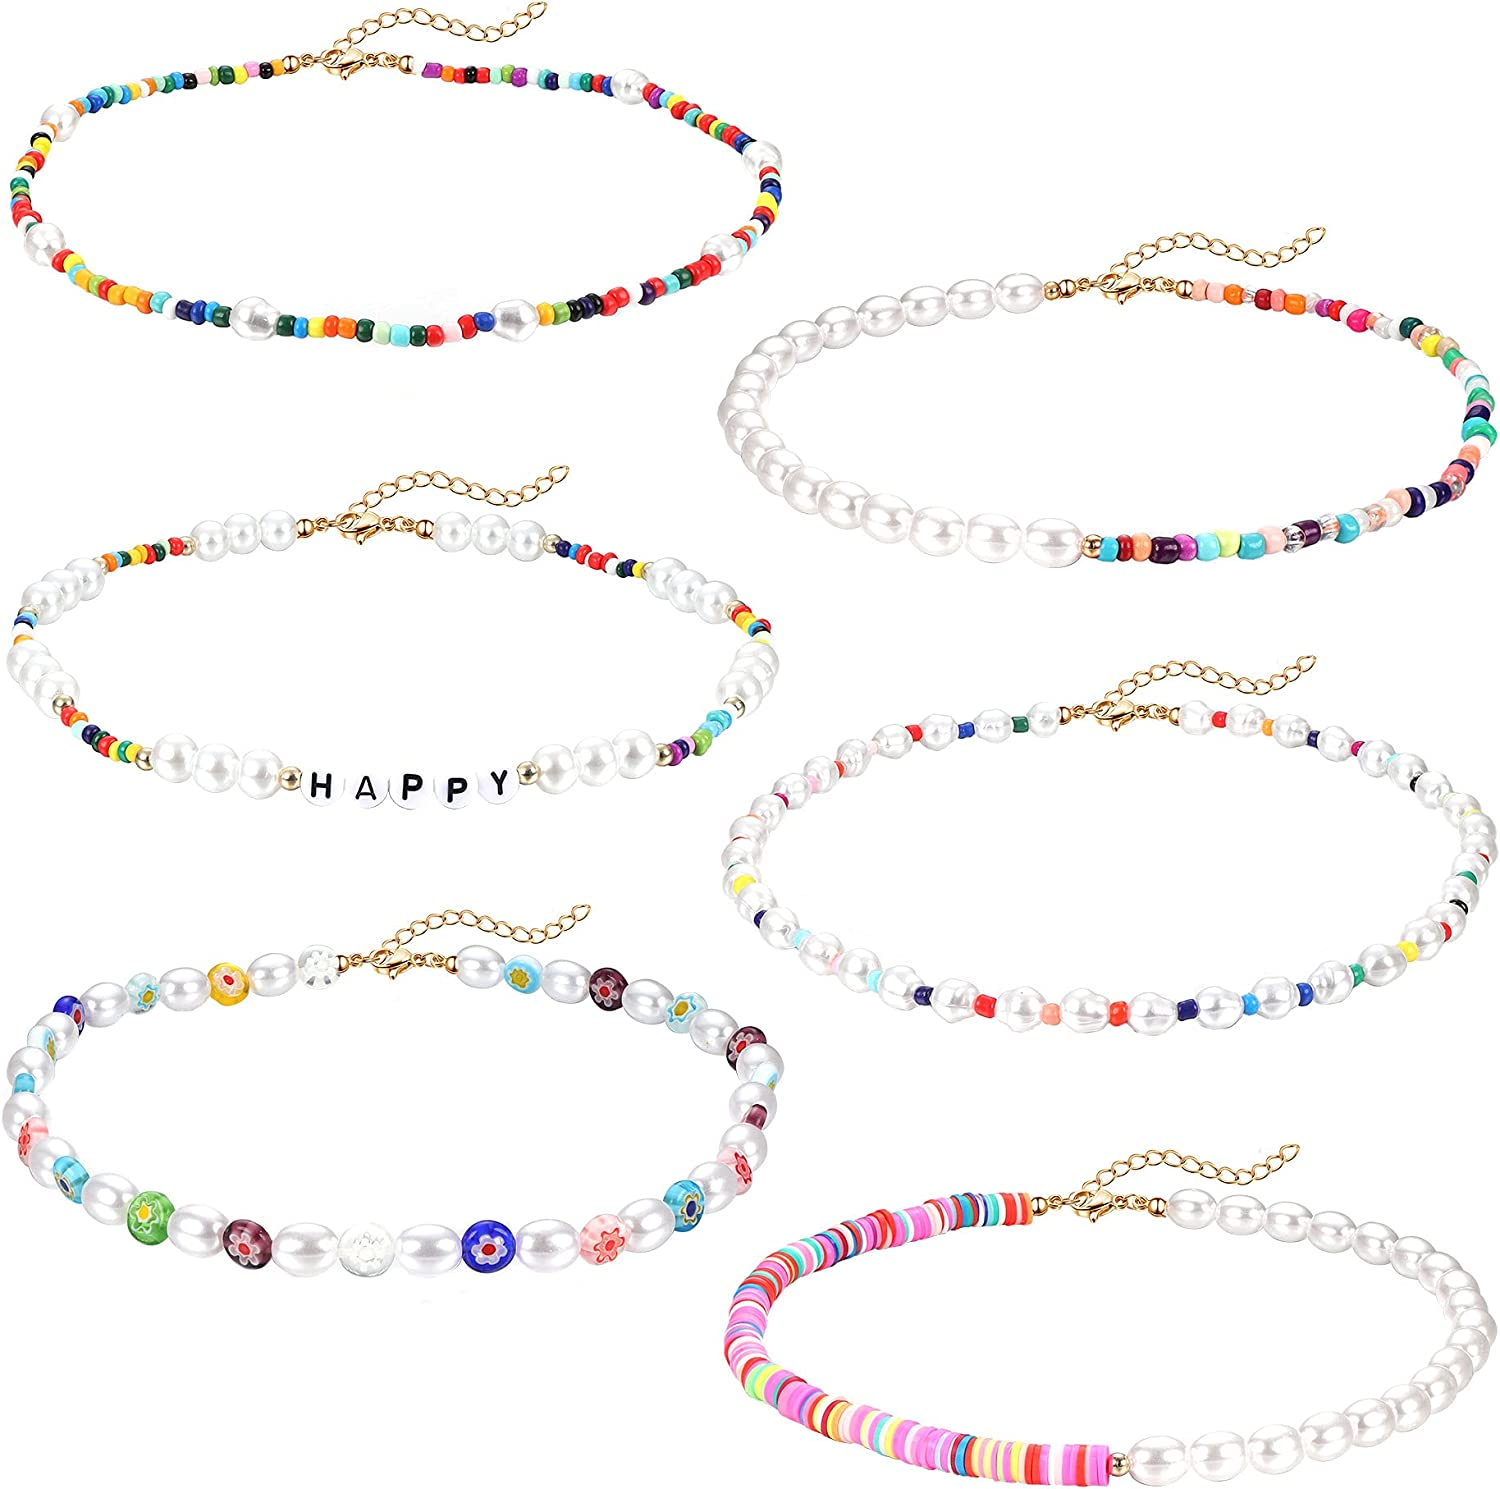 BESTEEL 6 PCS Seed Bead Choker Necklace for Women Colorful Bohemian Beaded Necklace Adjustable Tiny Beaded Pearl Choker Necklace Set